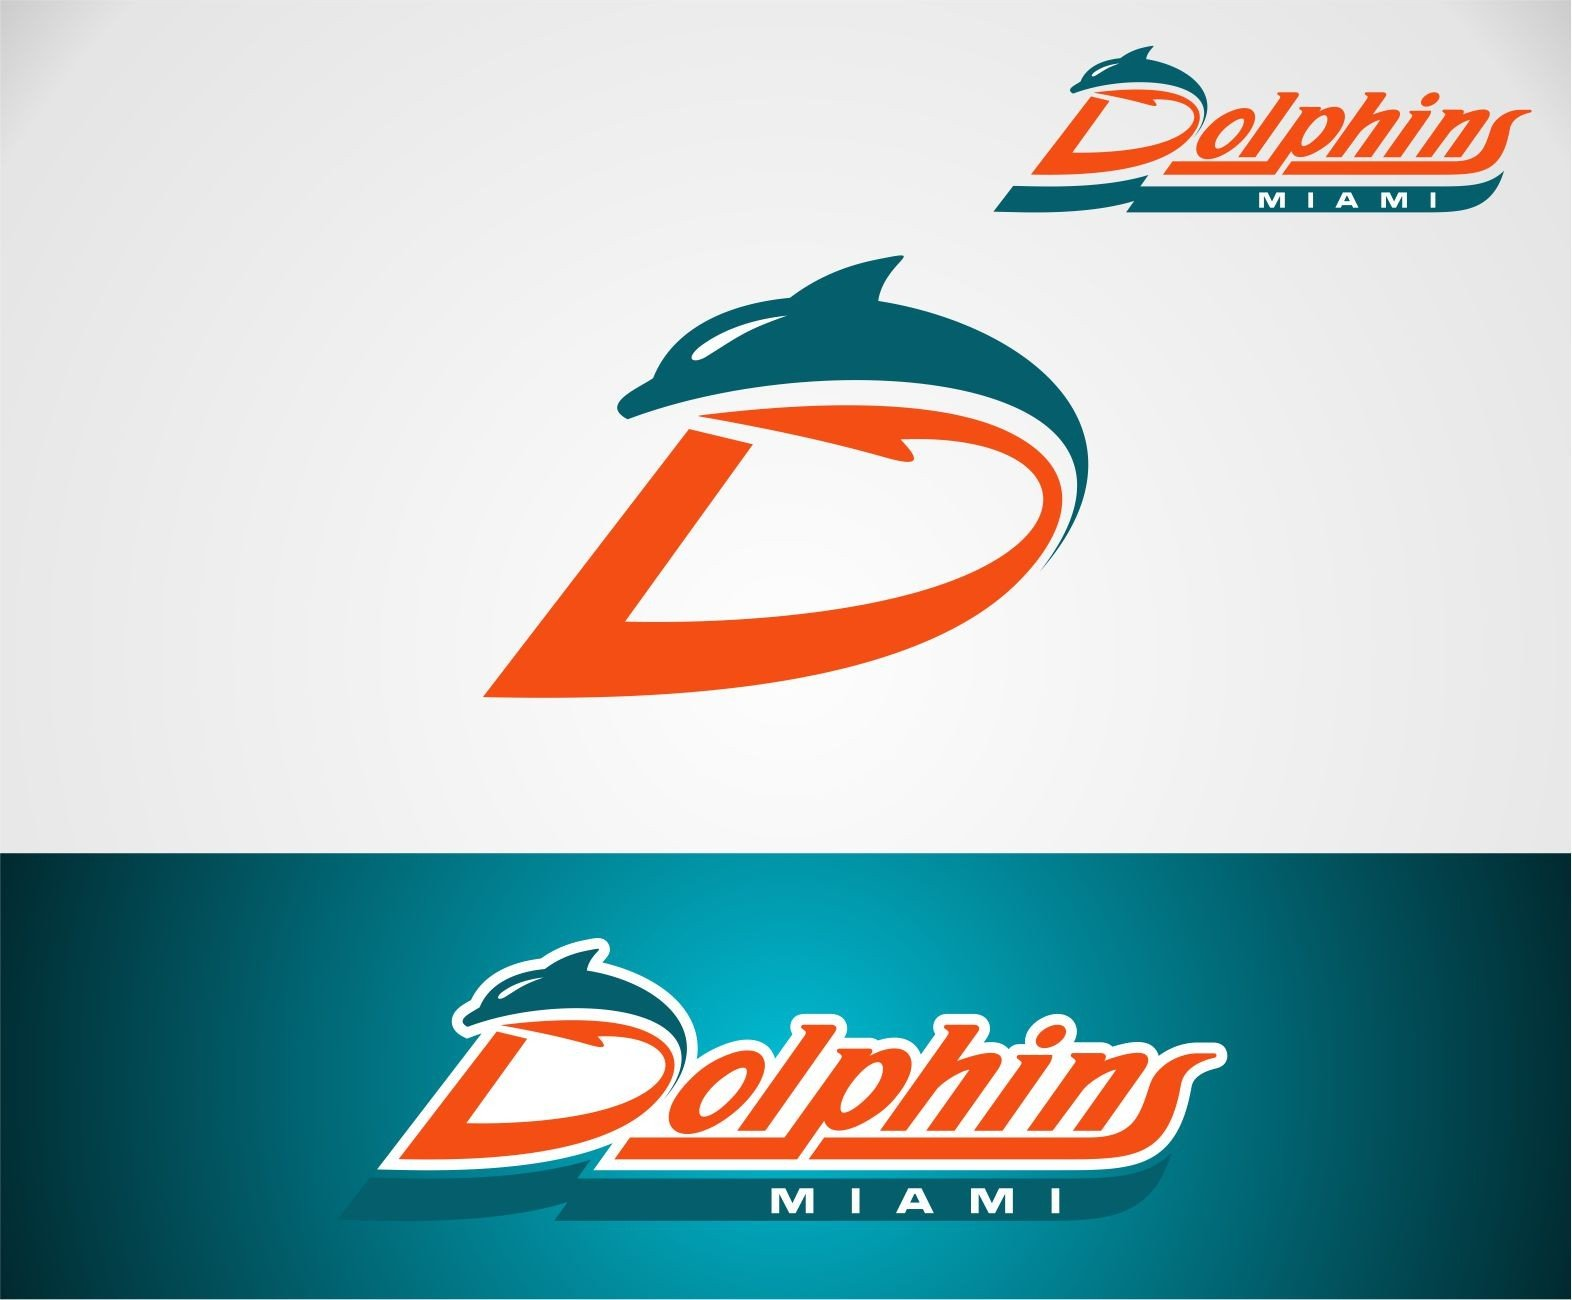 miami dolphins logo wallpaper   weddingdressincom 1572x1300